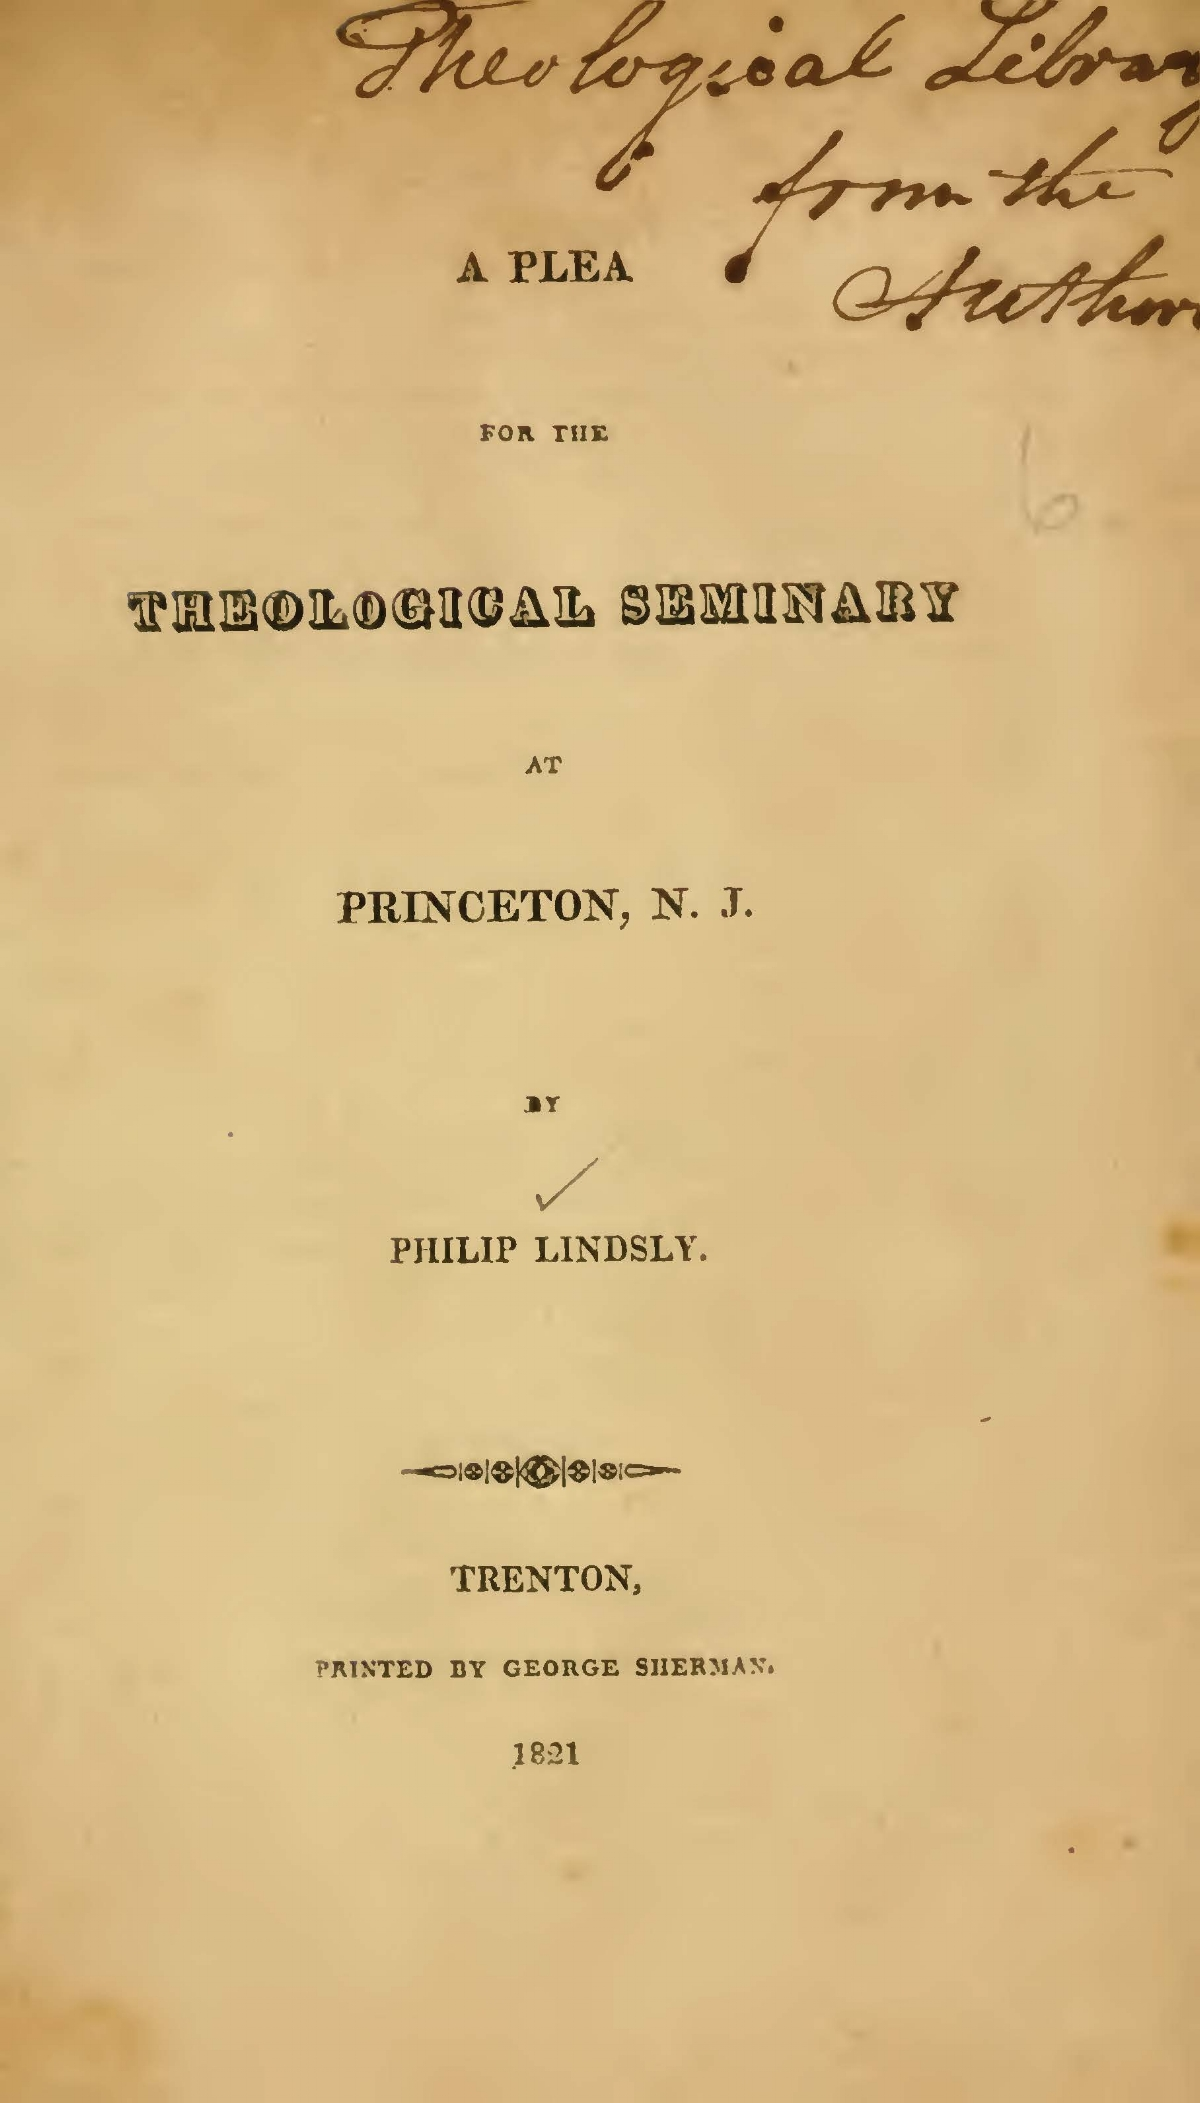 Lindsley, Philip, A Plea for the Theological Seminary at Princeton, N.J. Title Page.jpg